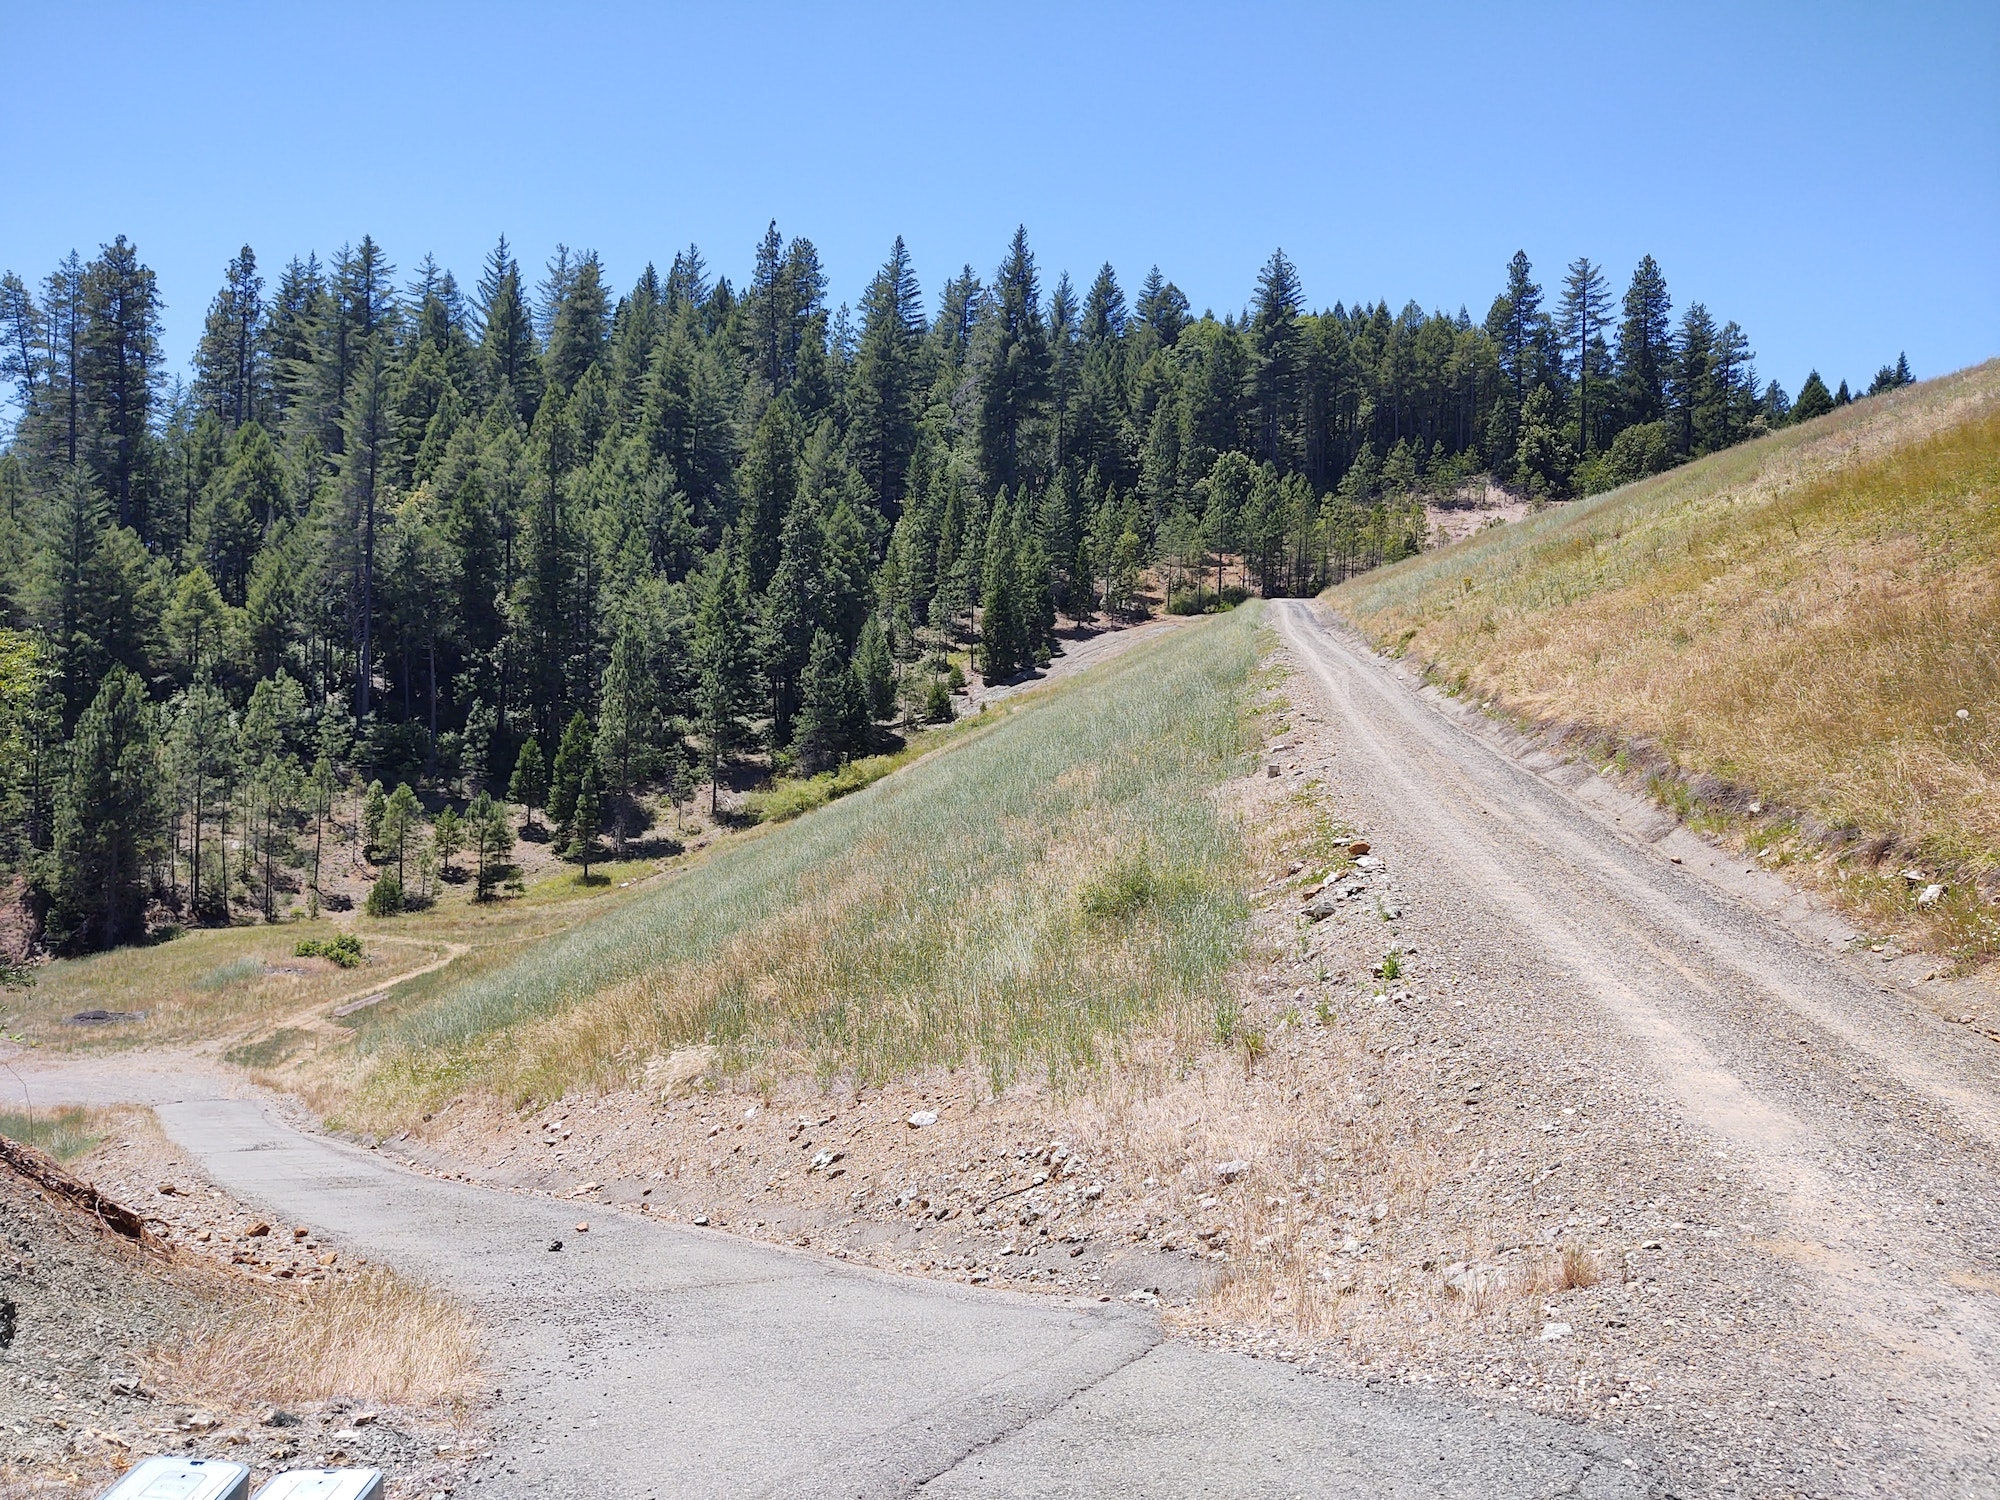 May contain: fir, abies, tree, plant, gravel, dirt road, road, and conifer